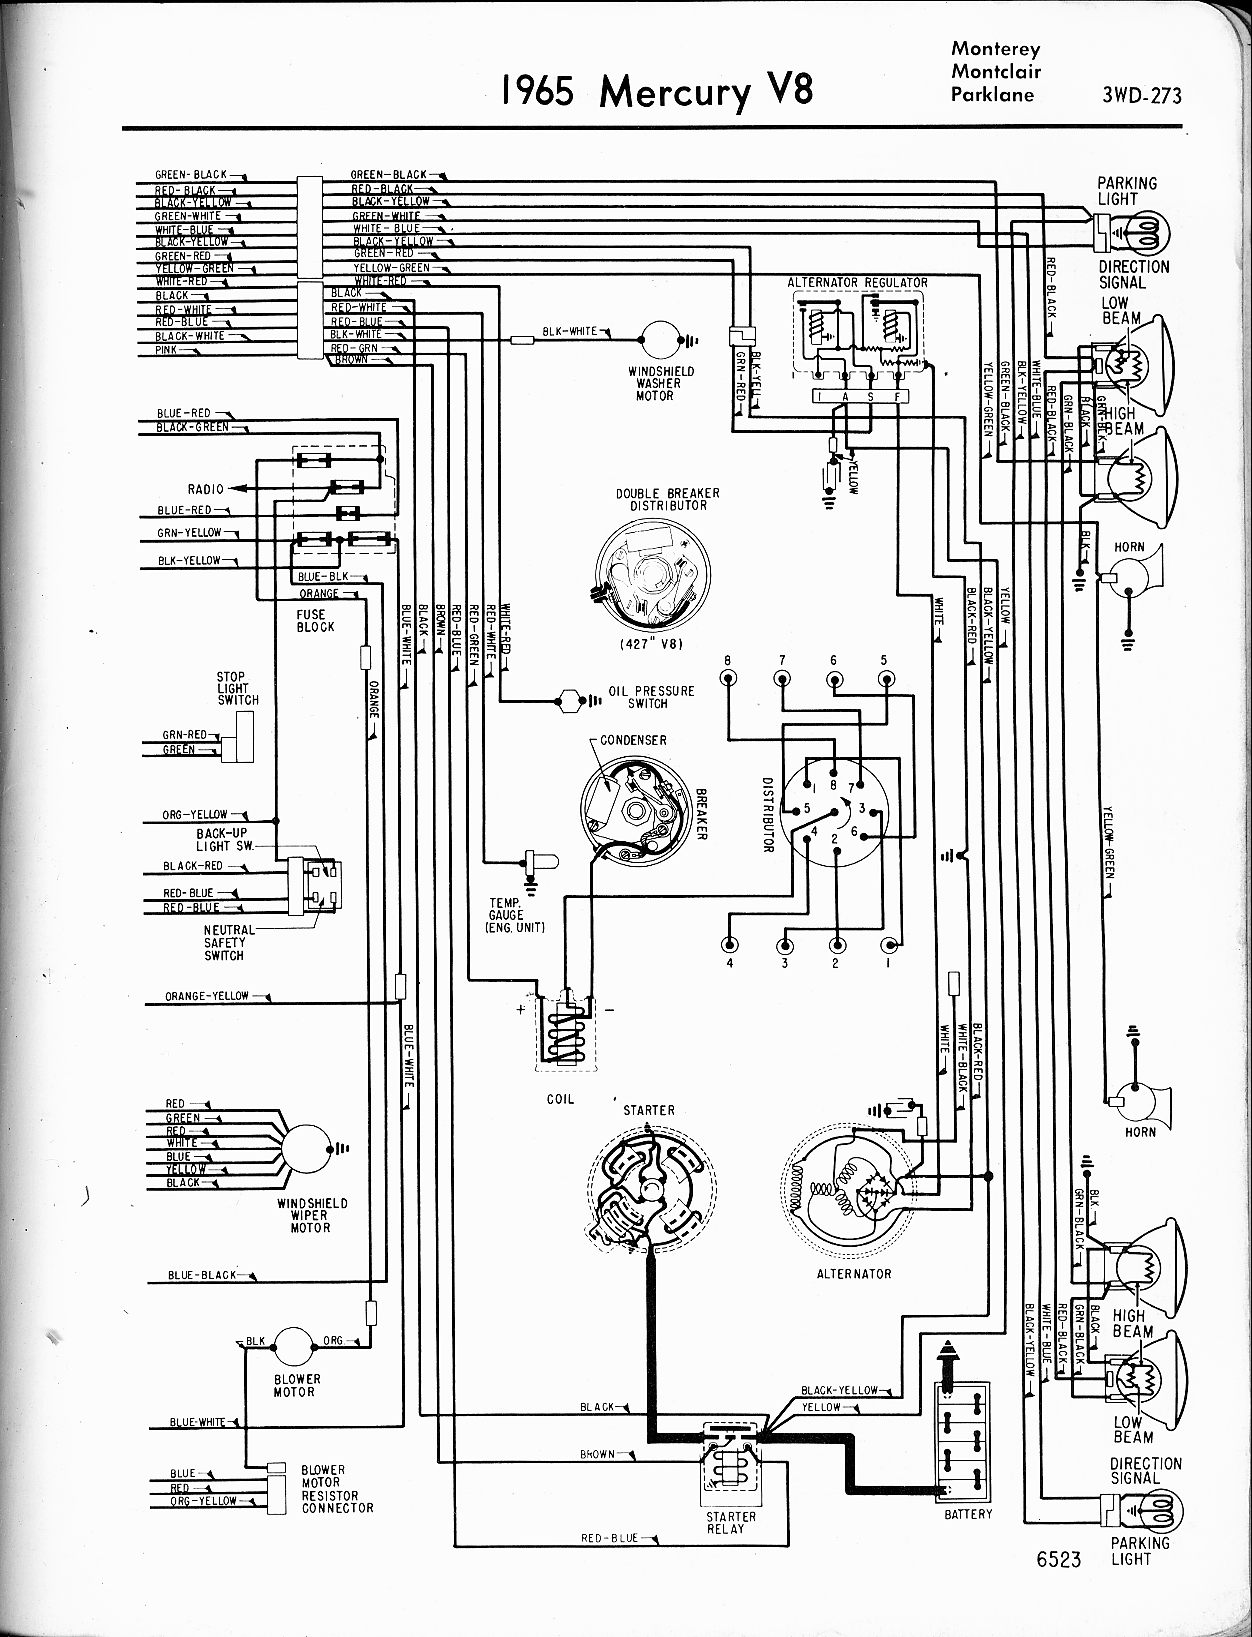 MWire5765 273 1966 lincoln continental wiring diagram 1970 lincoln continental 57 Chevy Wiring Diagram at nearapp.co